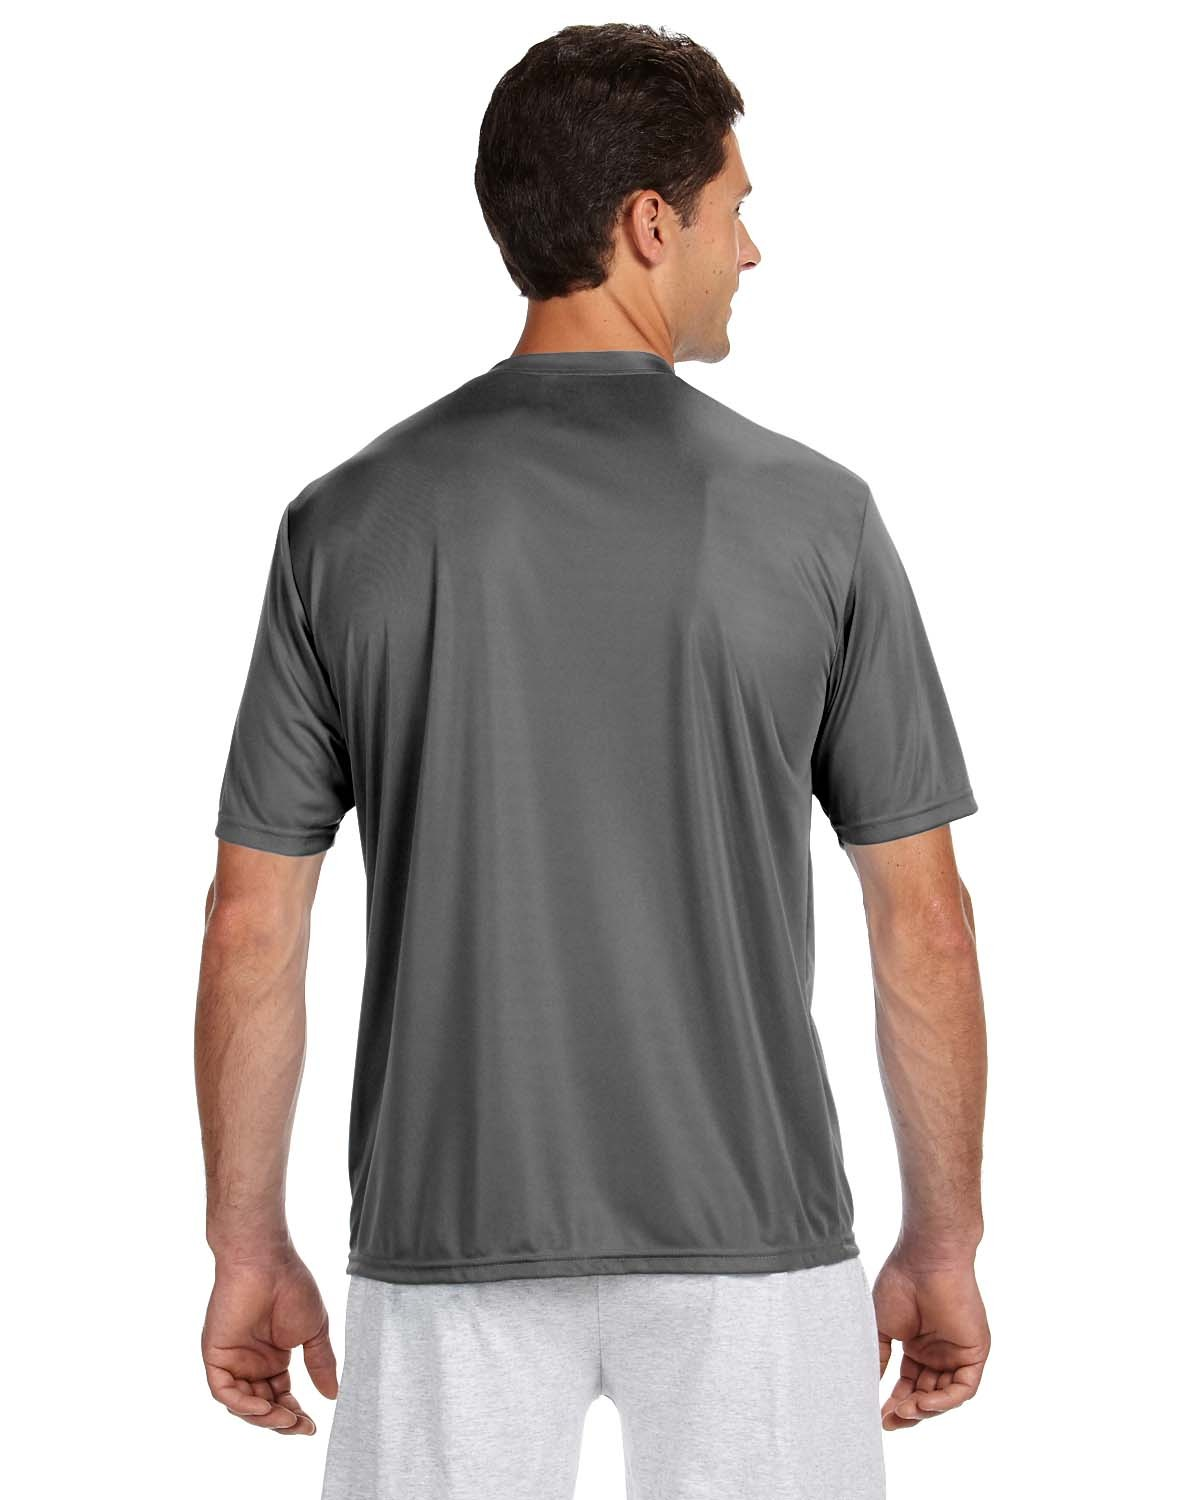 N3142 A4 Apparel GRAPHITE